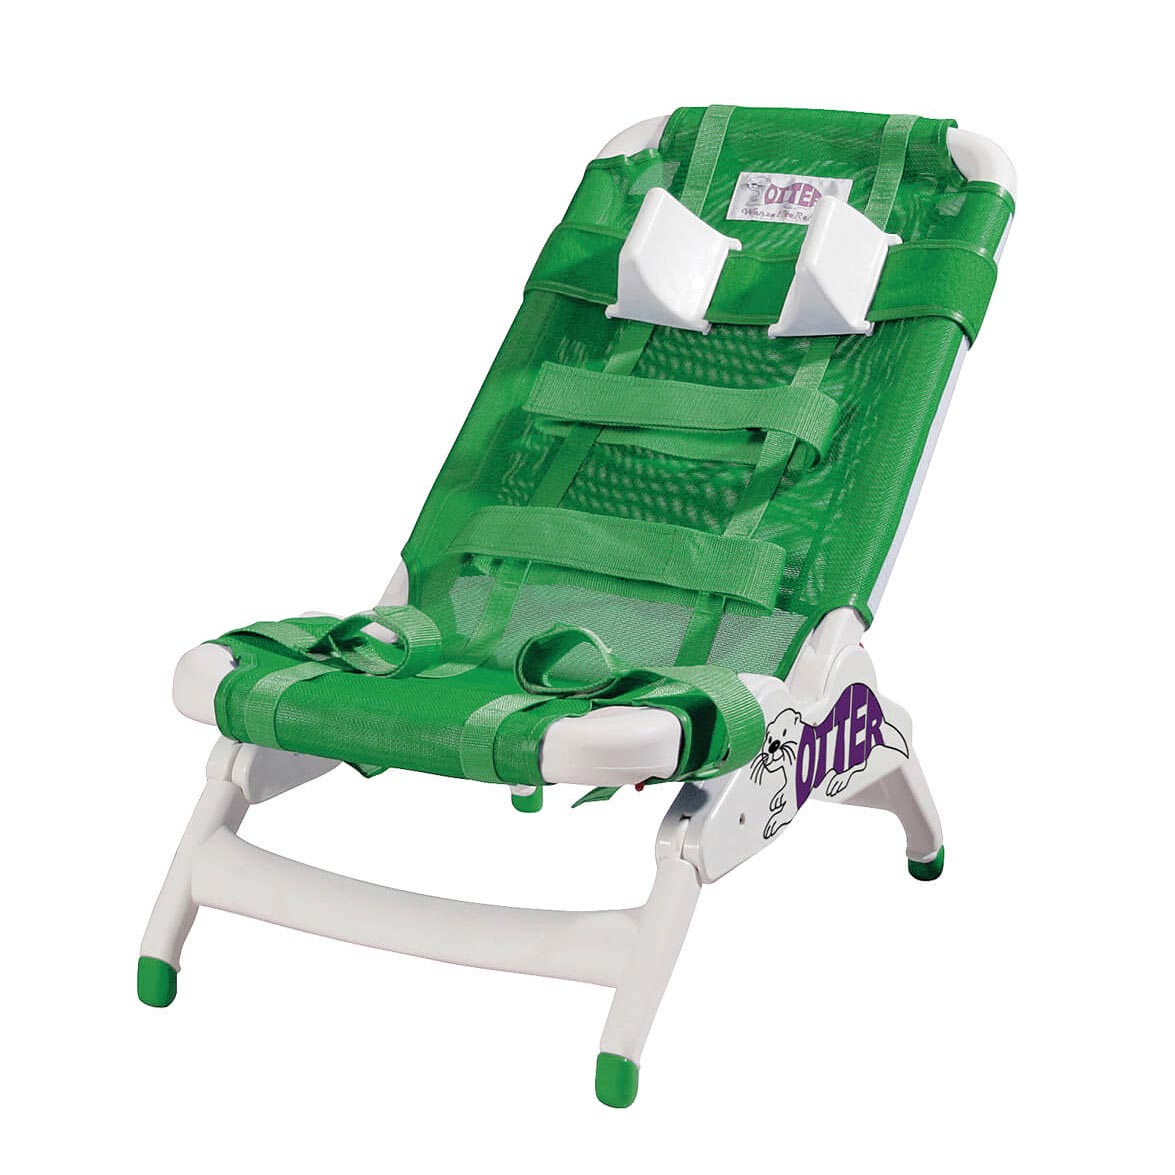 Drive Medical Otter Pediatric Bath Chair | Inspired By Drive (Otterbchair)